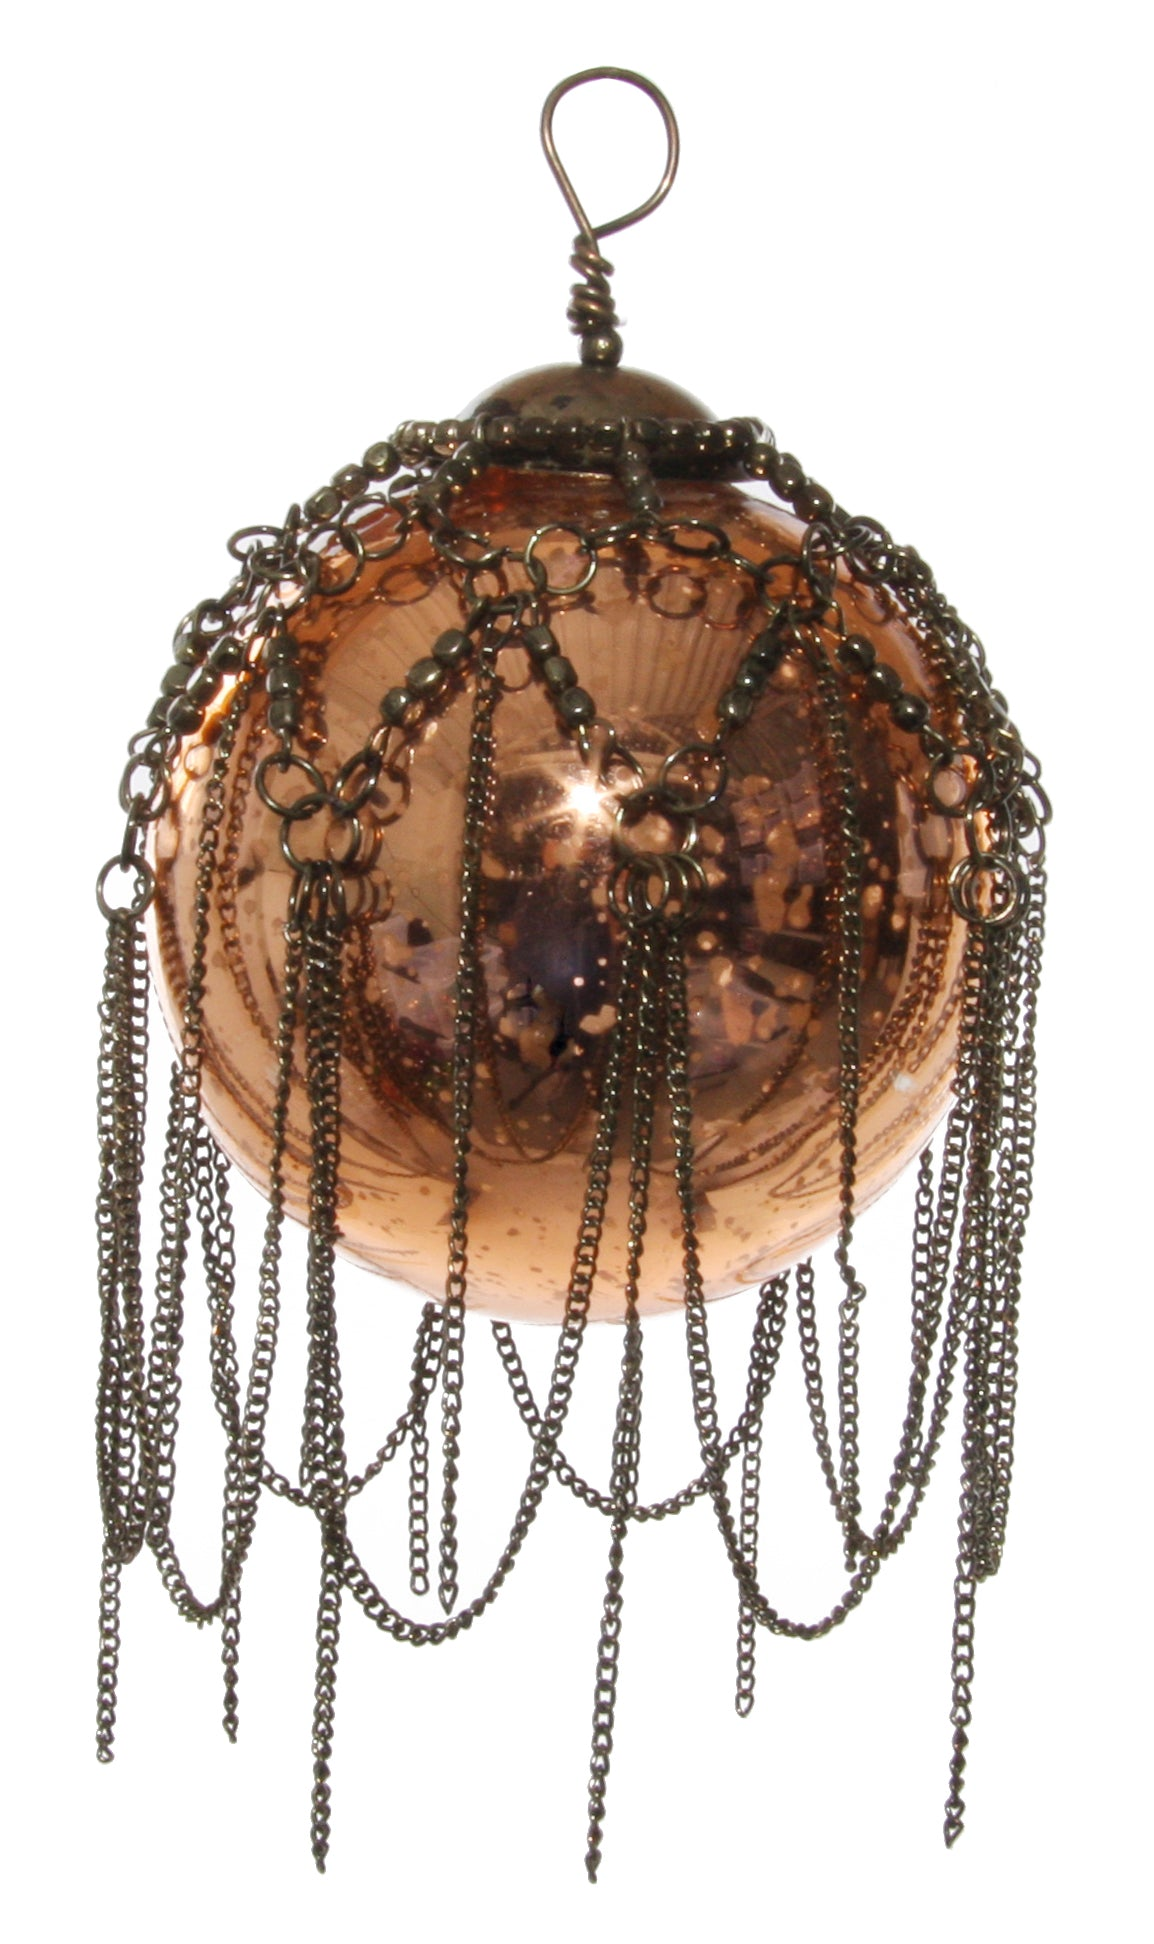 Glass Ball with Chain, antique copper